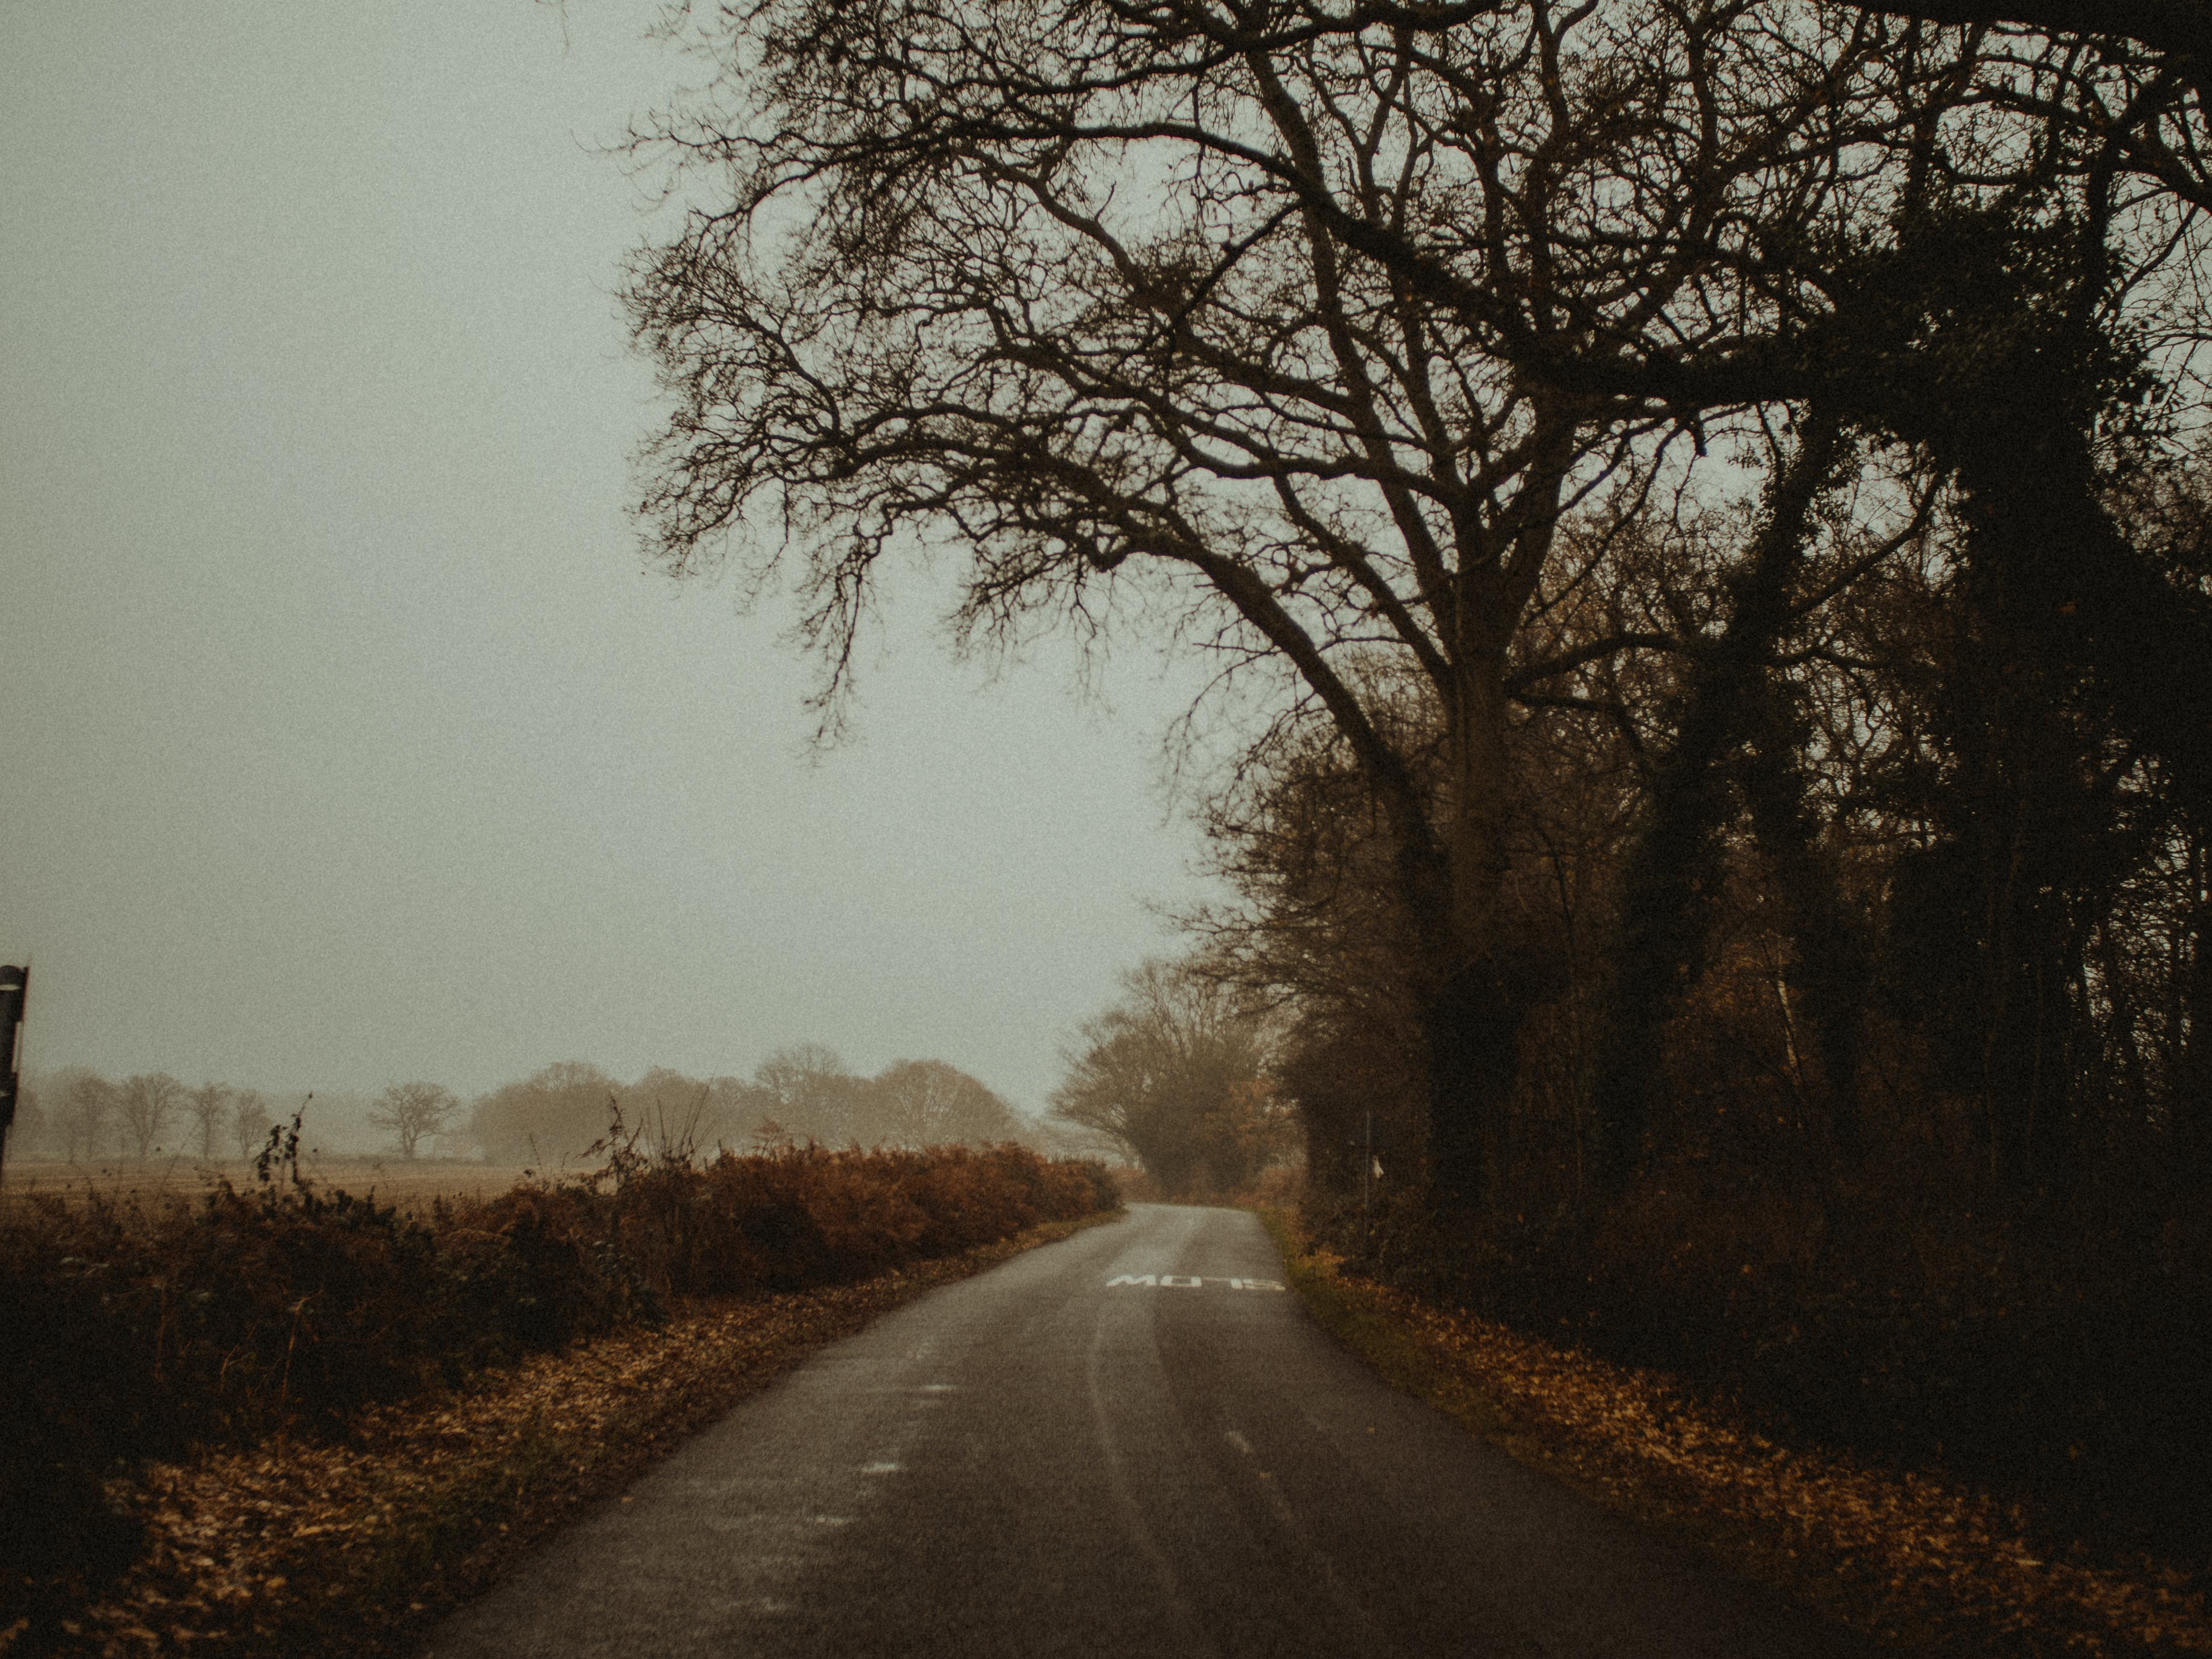 Road Near Forest